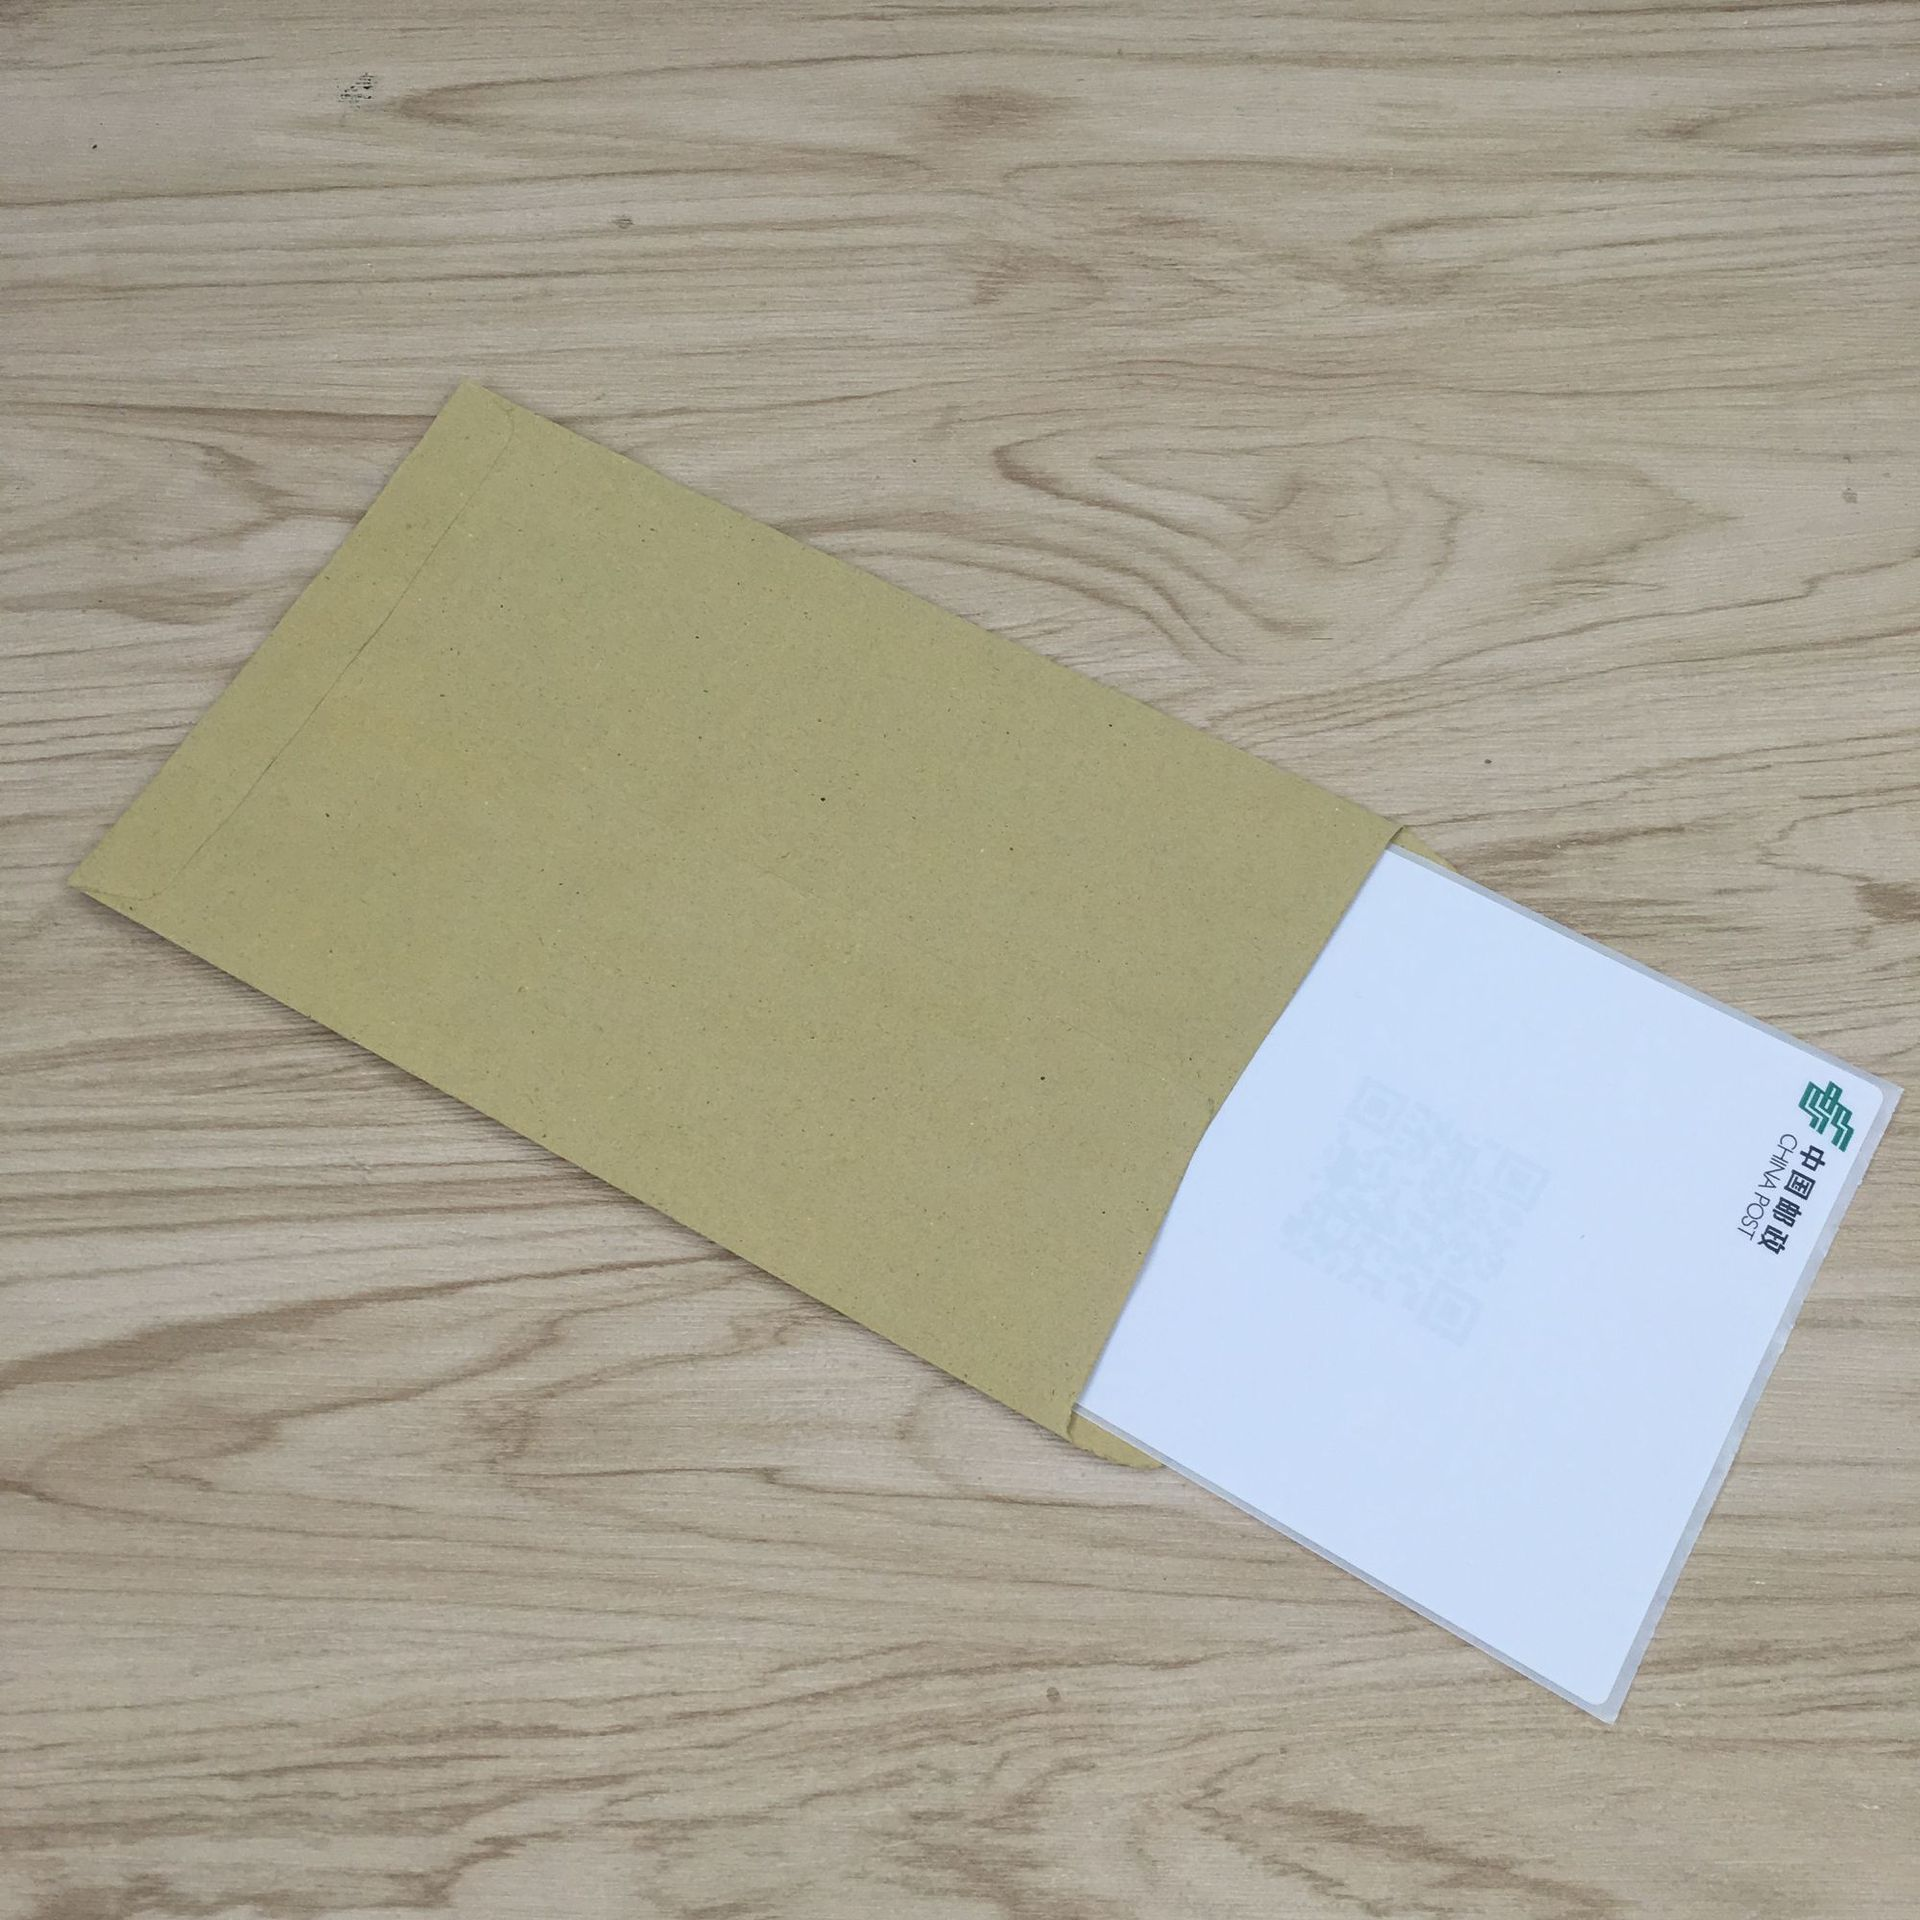 Paperback 2 Kraft Envelope Low Price Supply GB Kraft Paper Envelope Wood Pulp Paper 70G Customizable Printing Wholesale